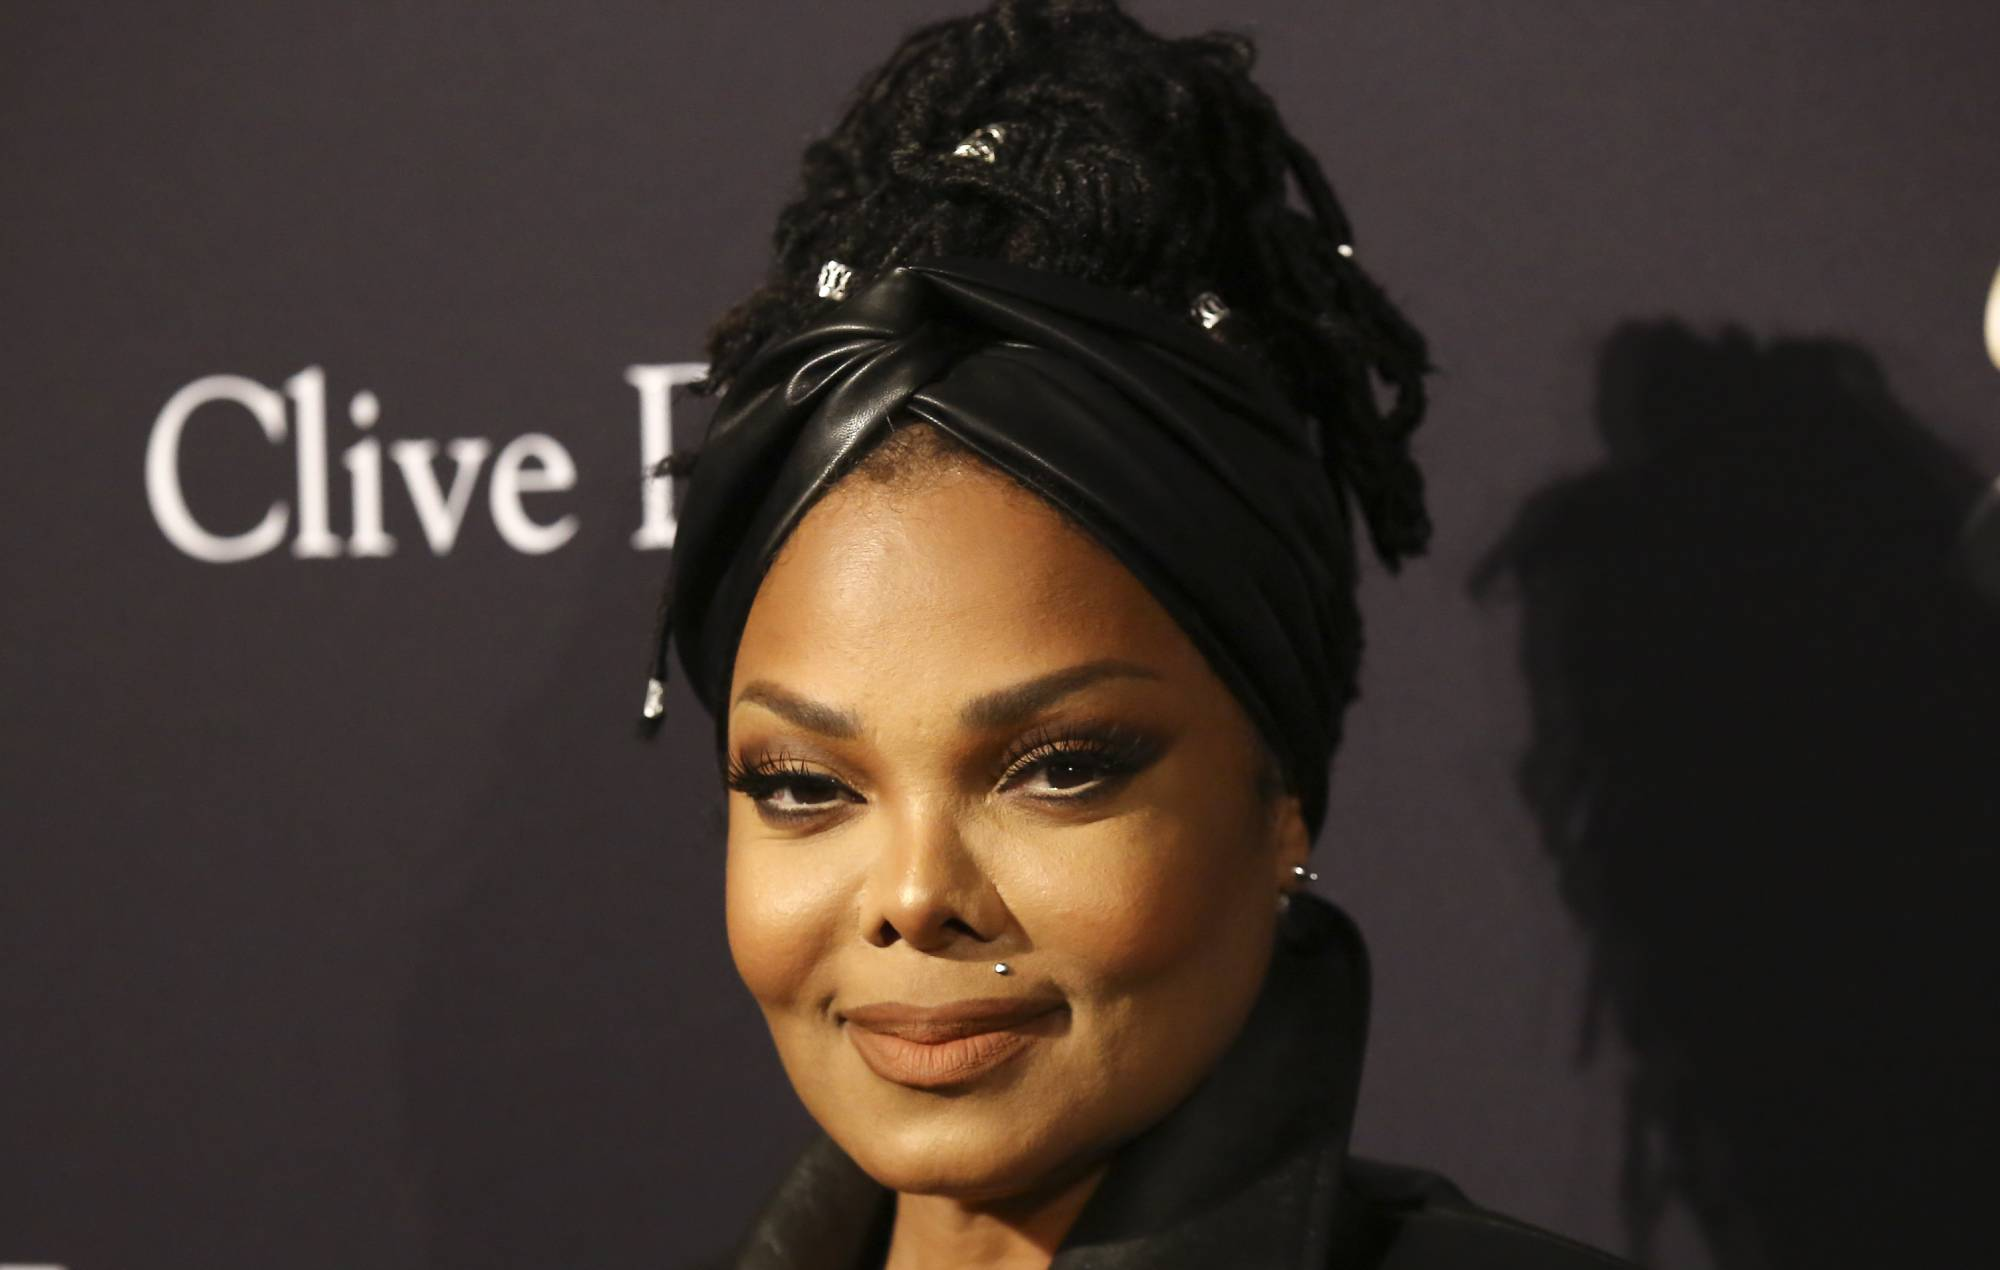 Janet Jackson's life story to be explored in new two-part documentary